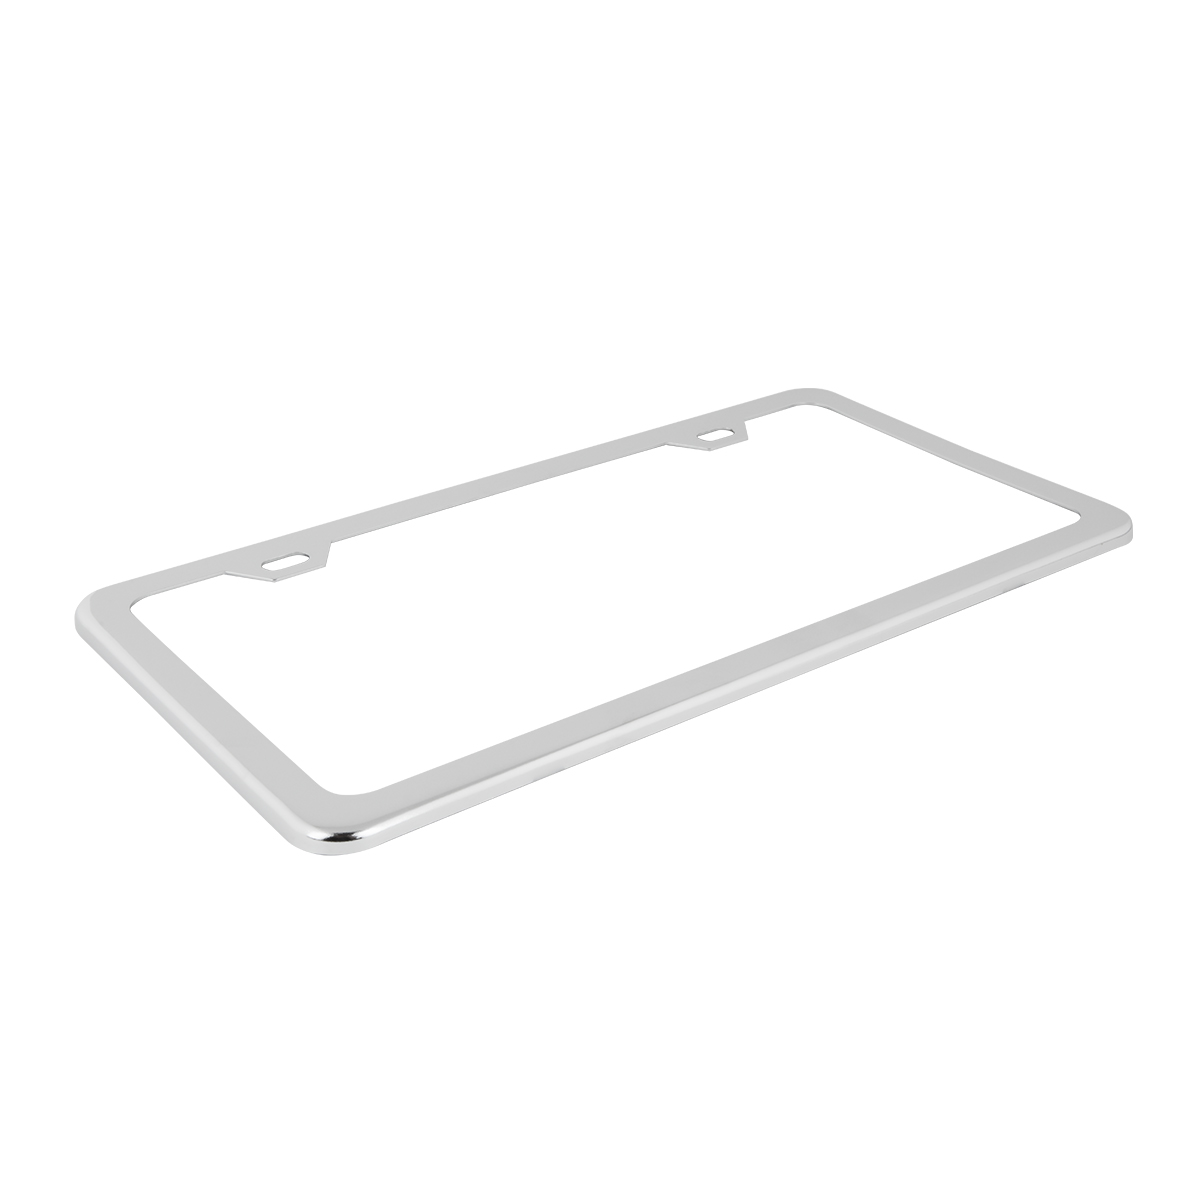 60400 Plain Chrome Plated 2 Hole License Plate Frame - Top View